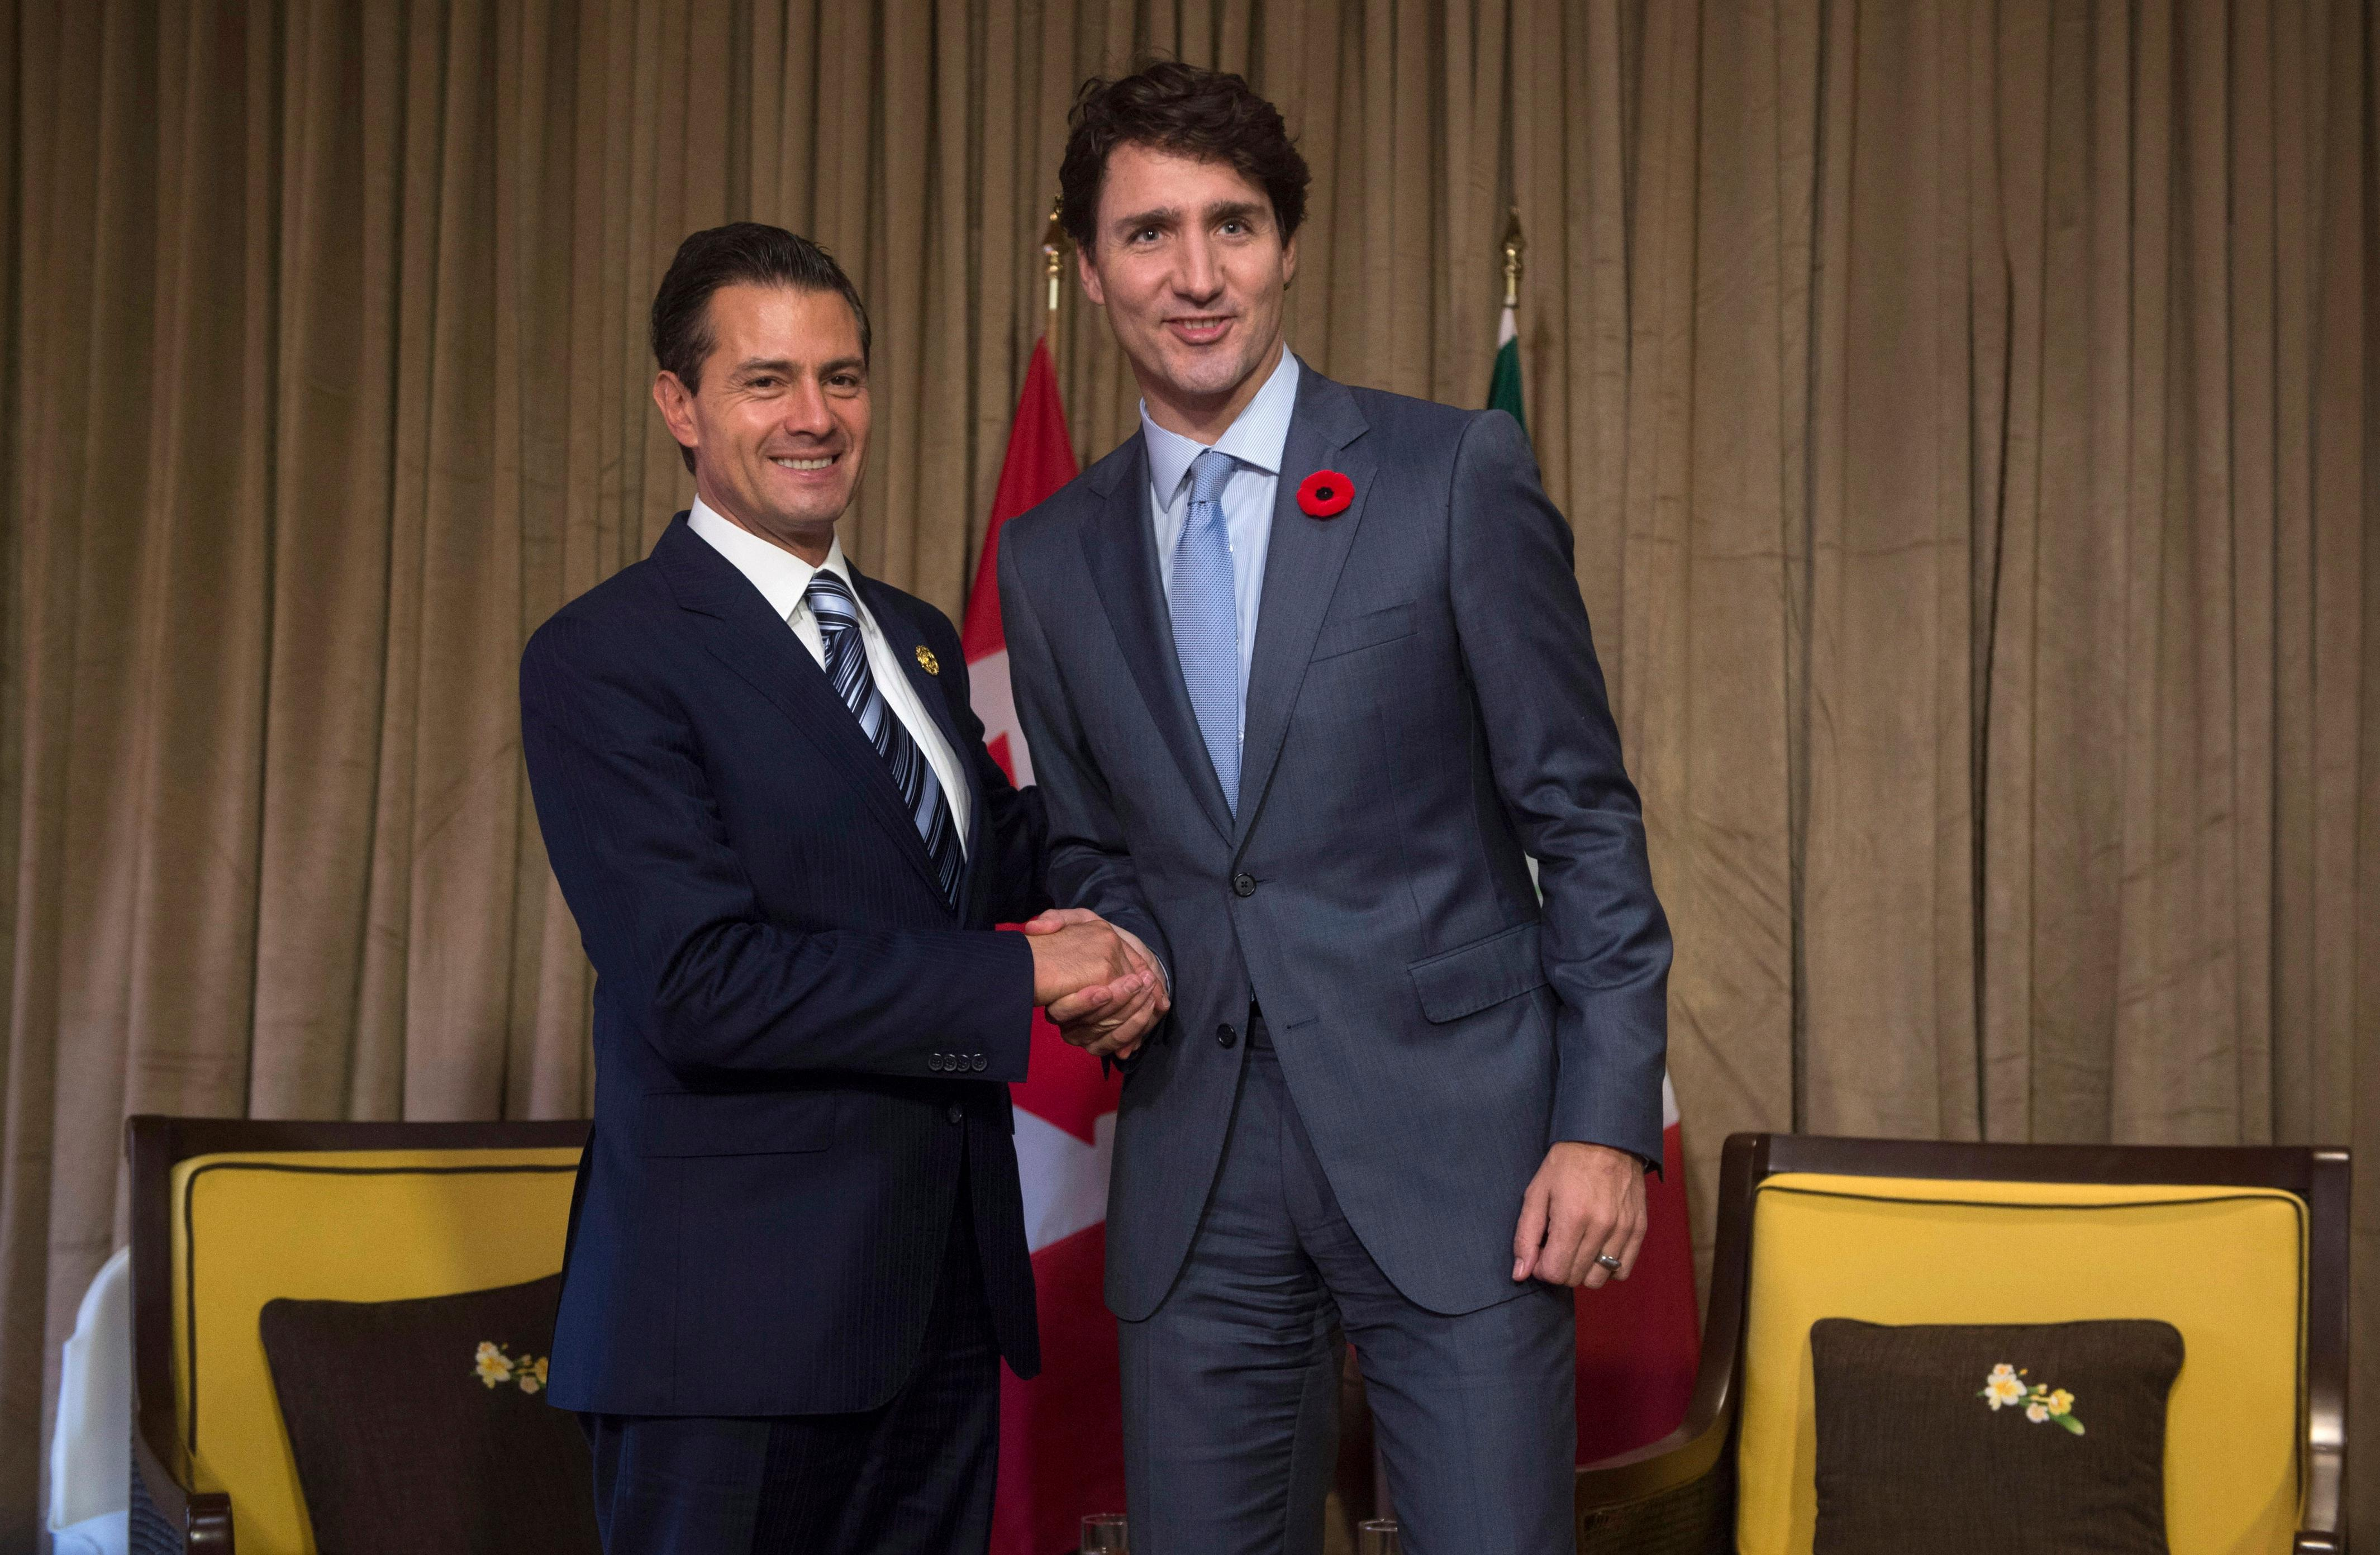 Canadian Prime Minister Justin Trudeau meets with Mexican President Enrique Pena Nieto during a bilateral meeting at the APEC Summit in Da Nang, Vietnam Friday, Nov. 10, 2017.   (Adrian Wyld/The Canadian Press via AP)